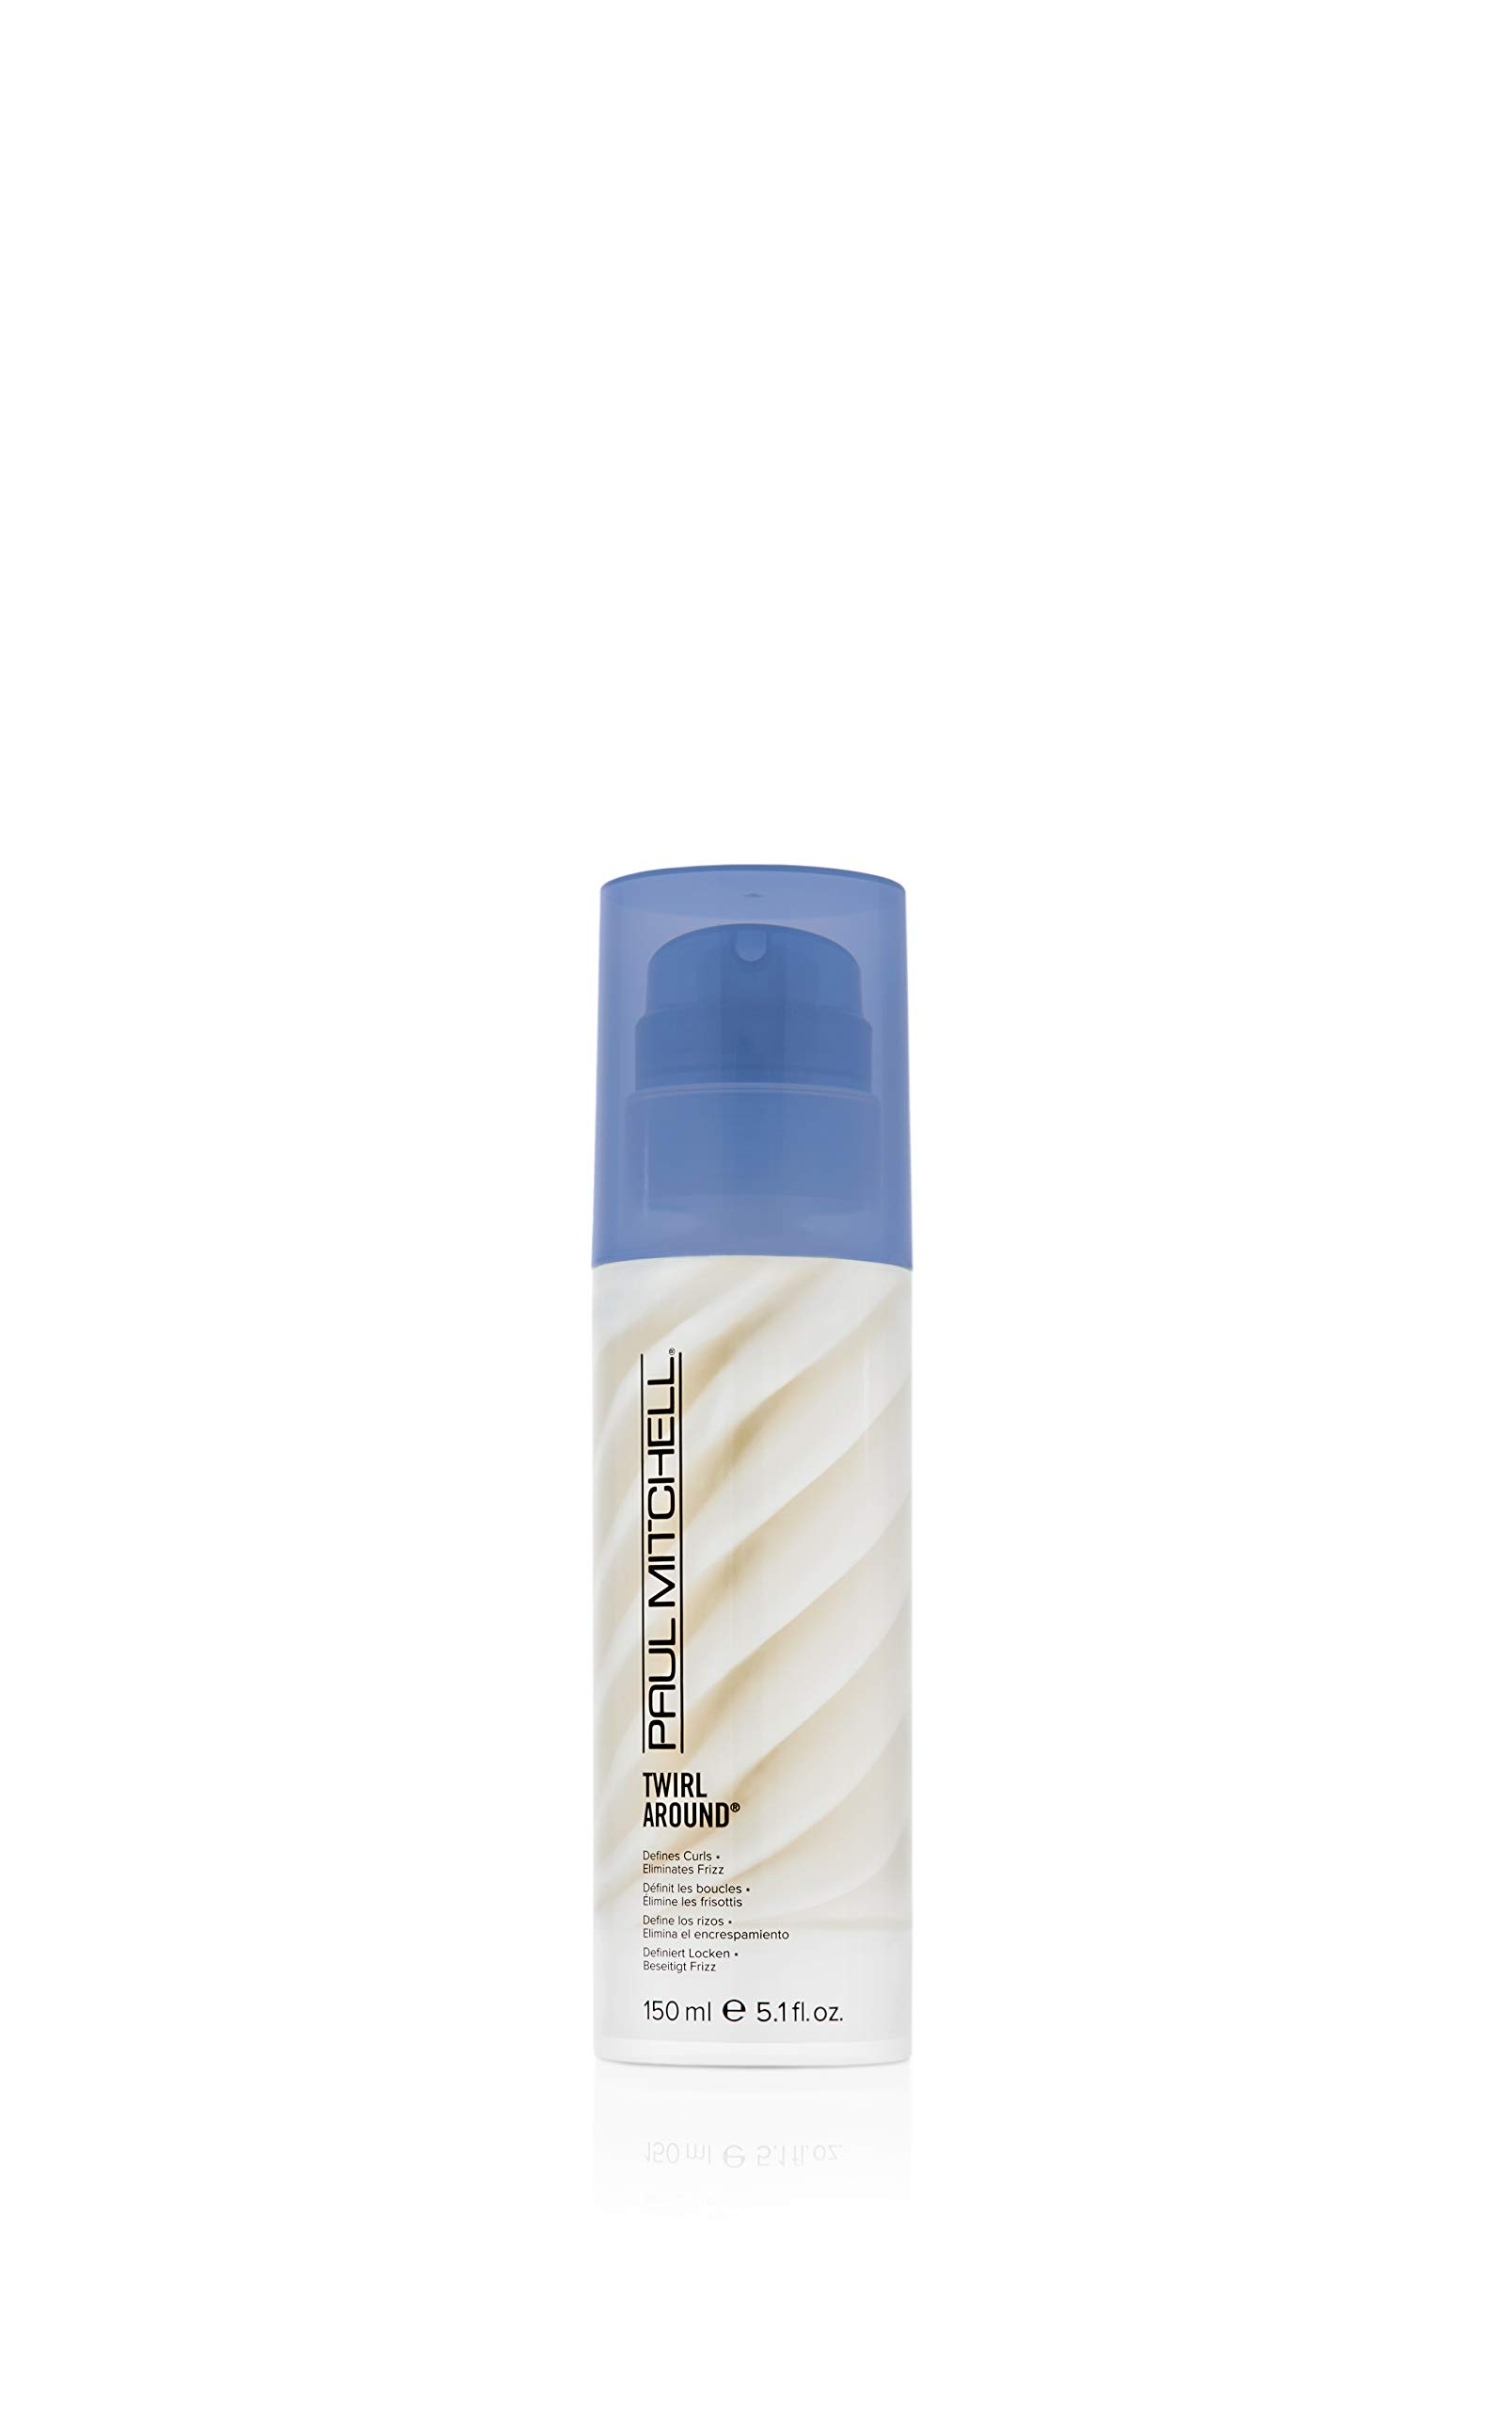 Paul Mitchell Twirl Around Crunch-Free Curl Definer by Paul Mitchell